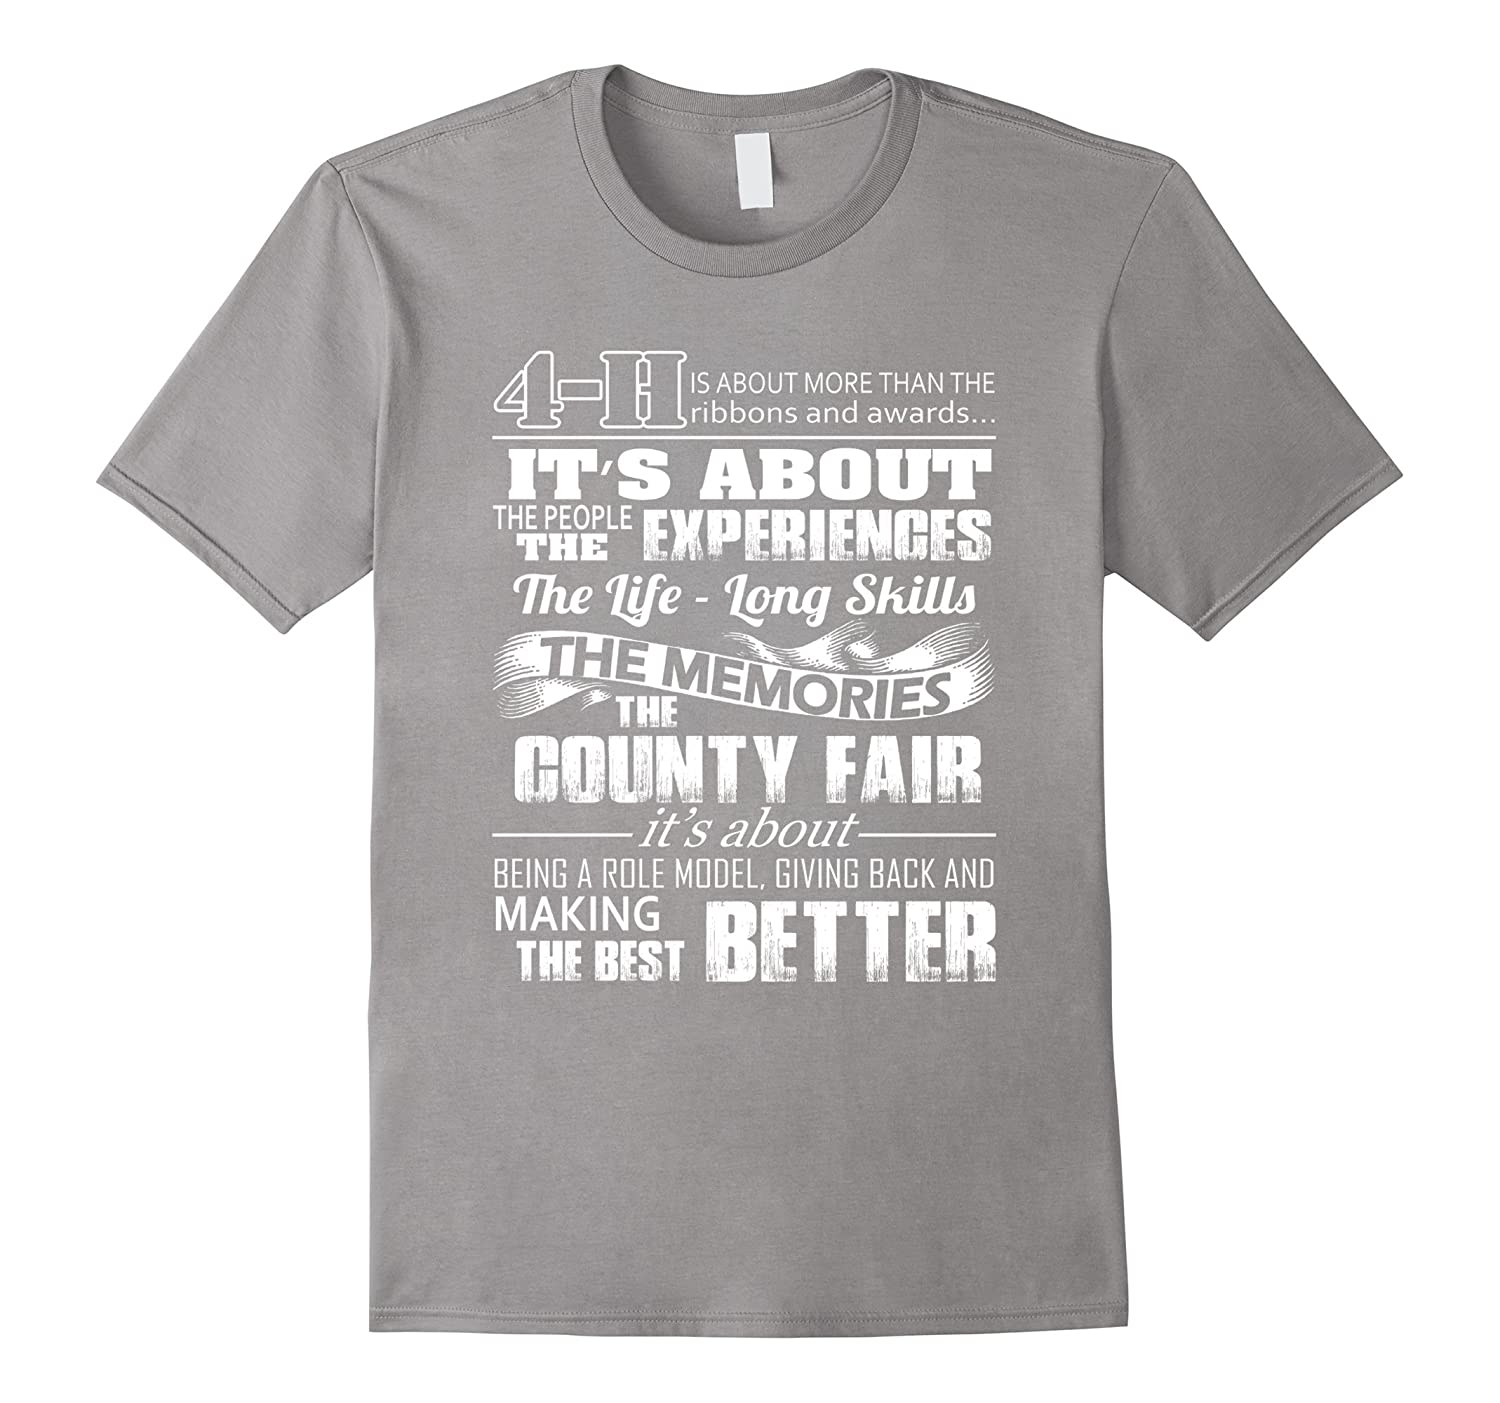 4 H experiences, memories, the best better- 4 H saying shirt-TH